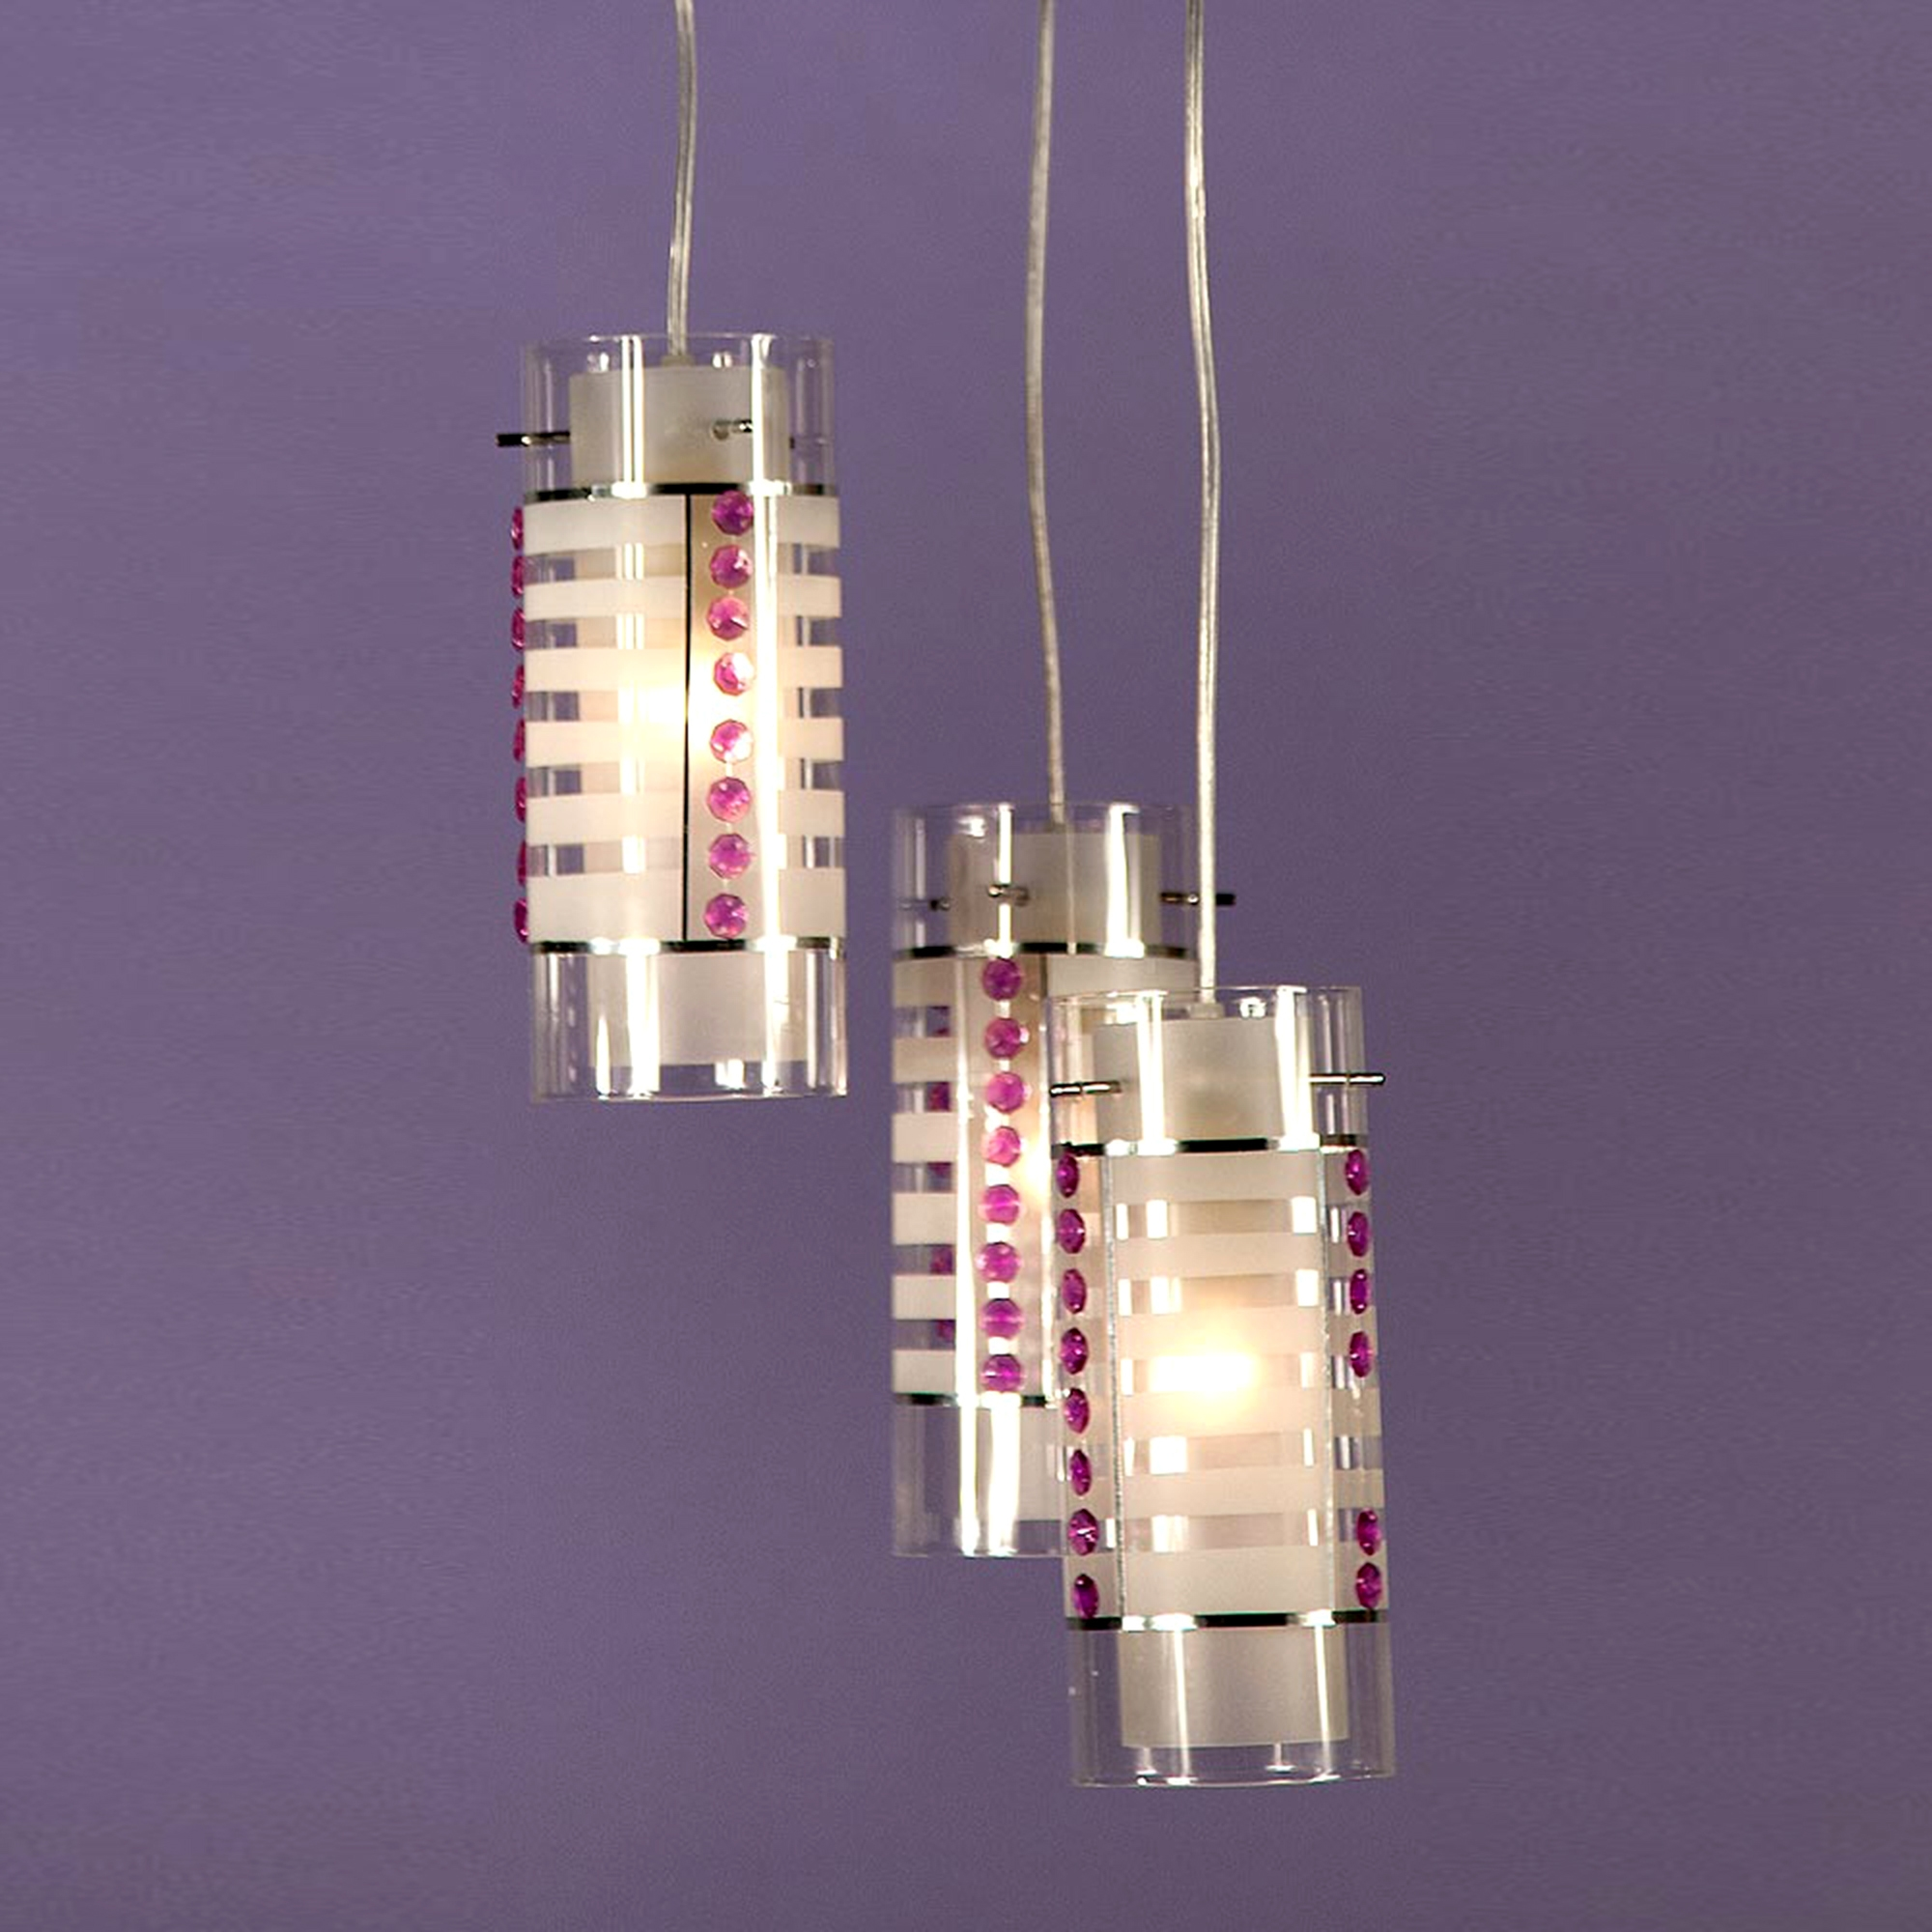 Candy Stripe Pendant Light - White, Pink